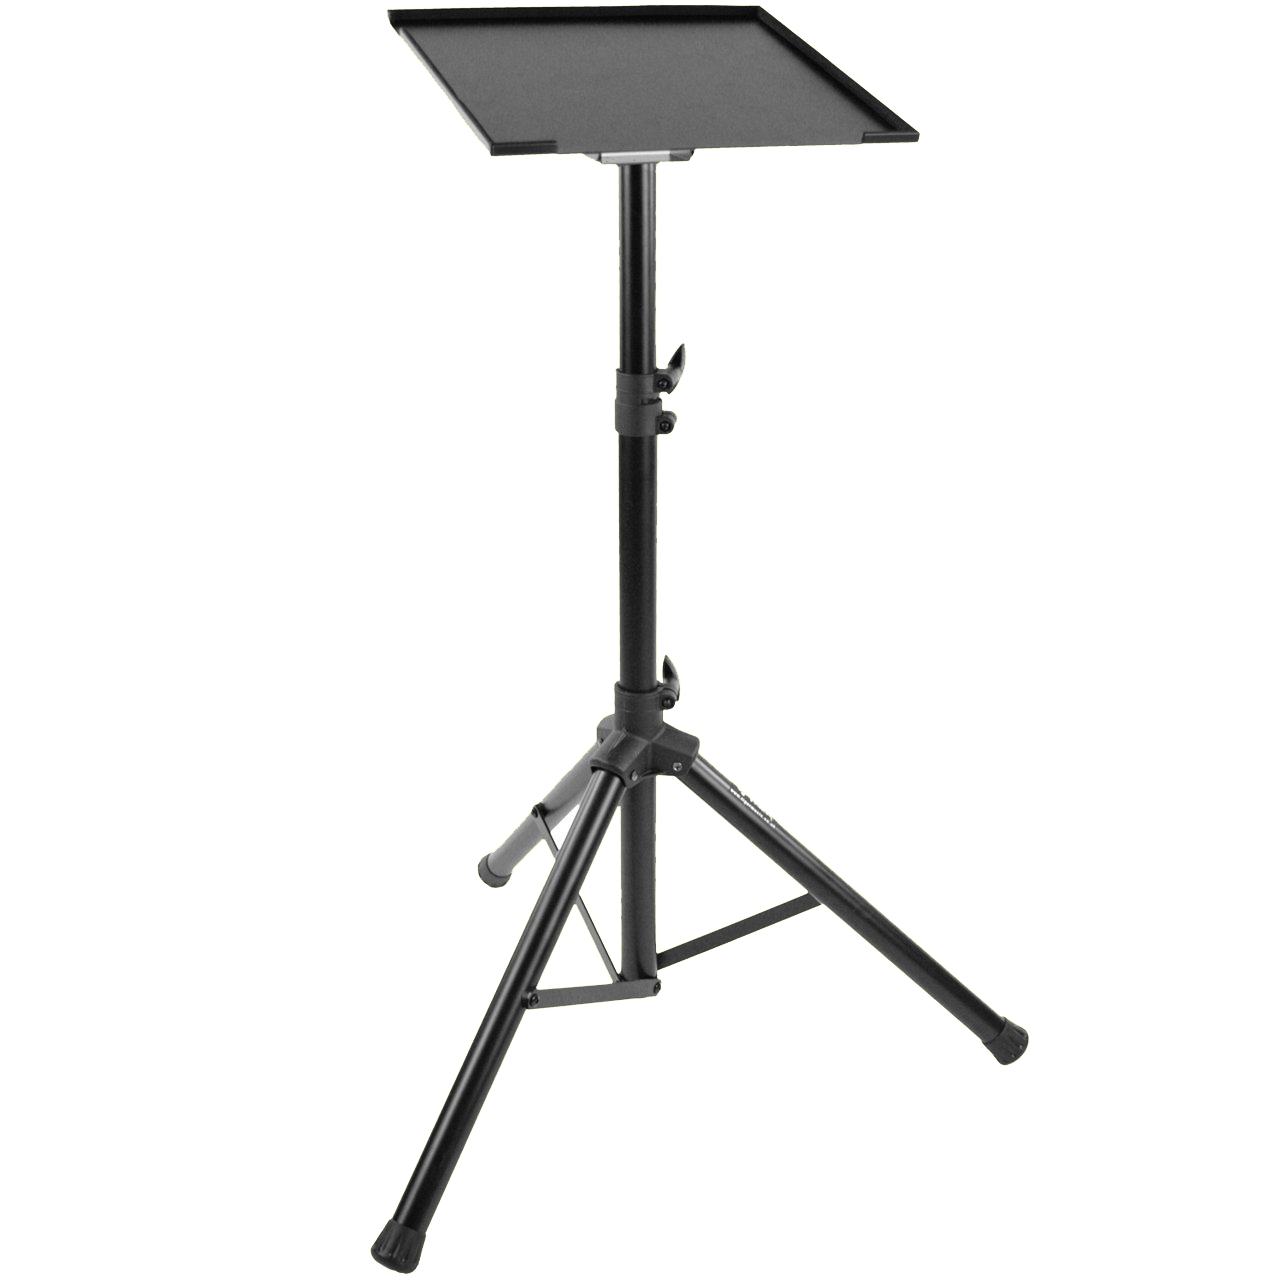 Rent an angled digital projector stand